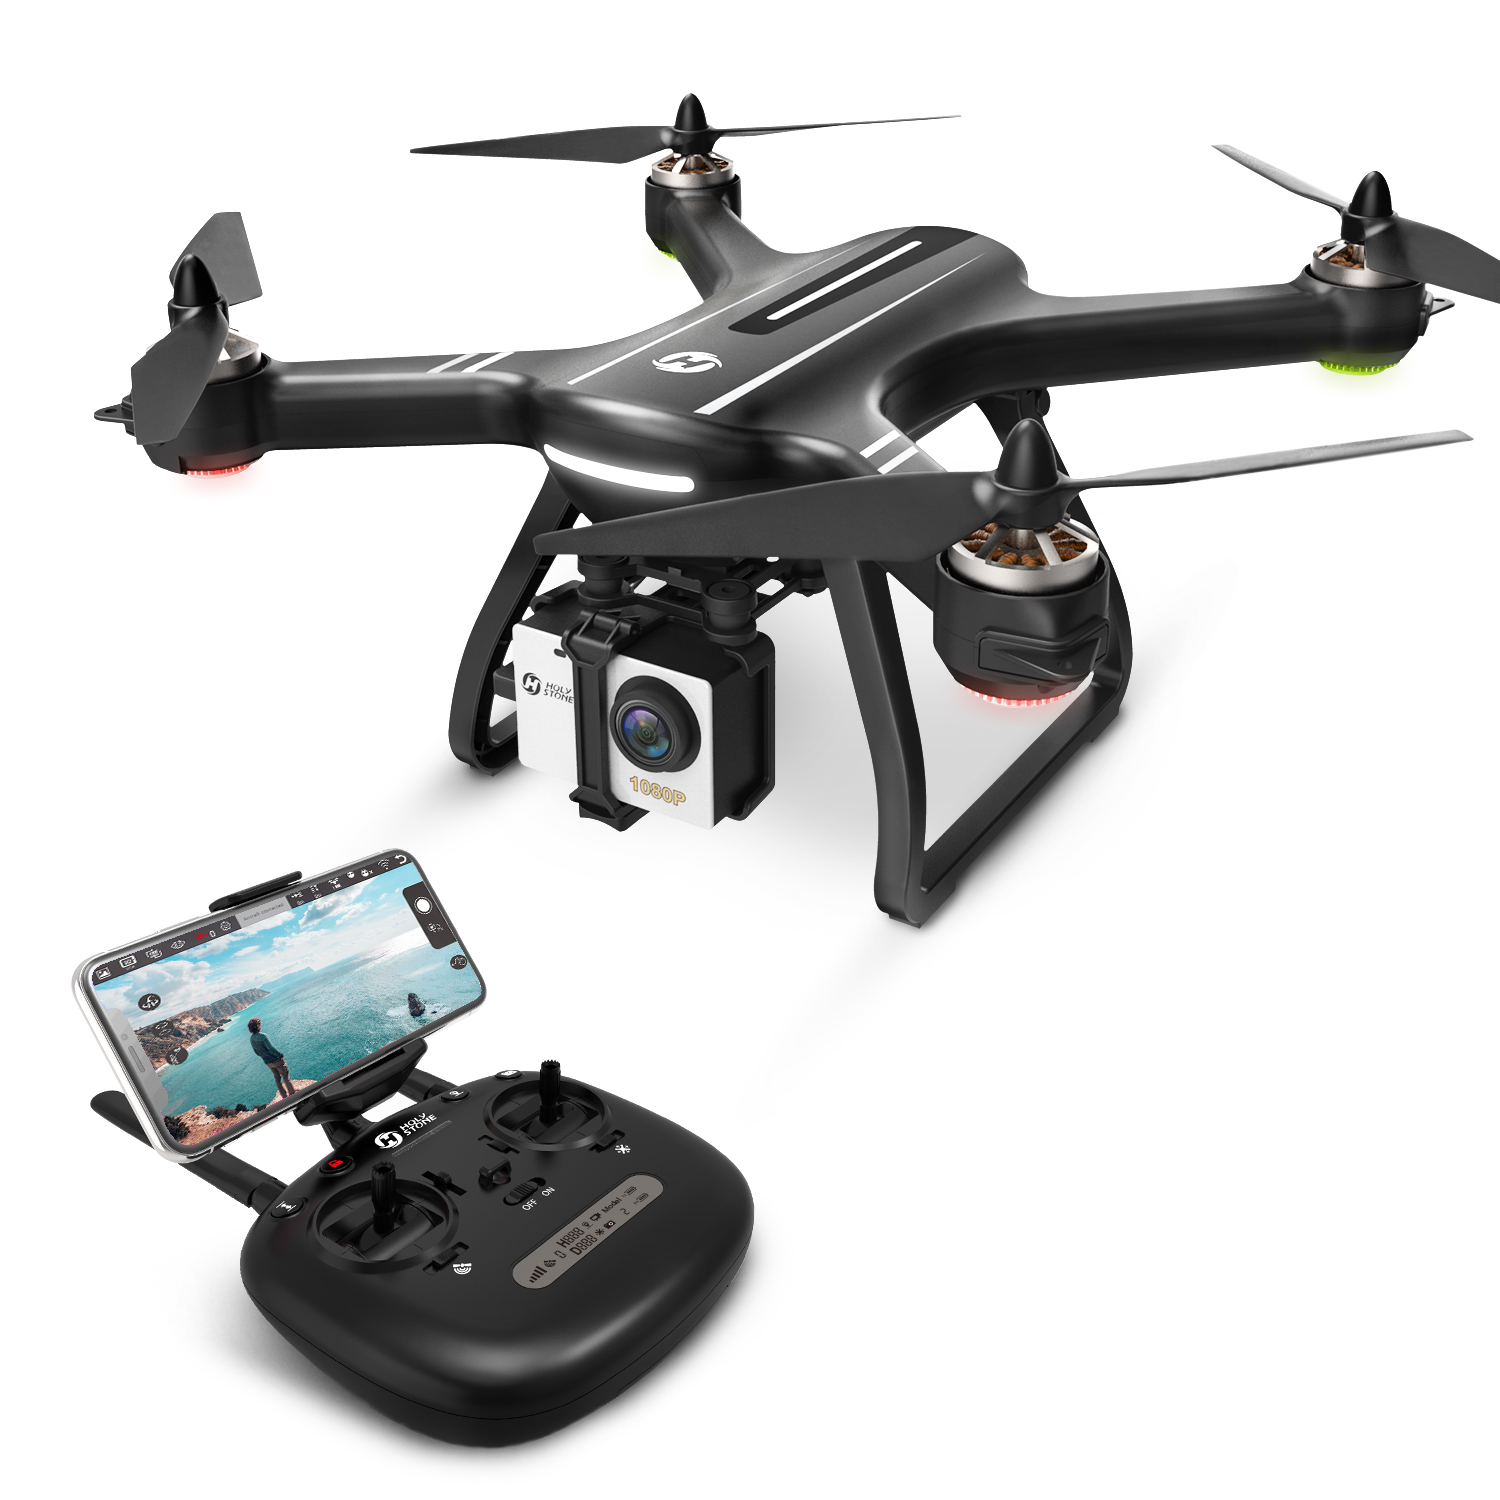 EU USA Holy Stone HS700 GPS Selfie Drone with Camera HD FPV 1000m Flight Range 2800mAh